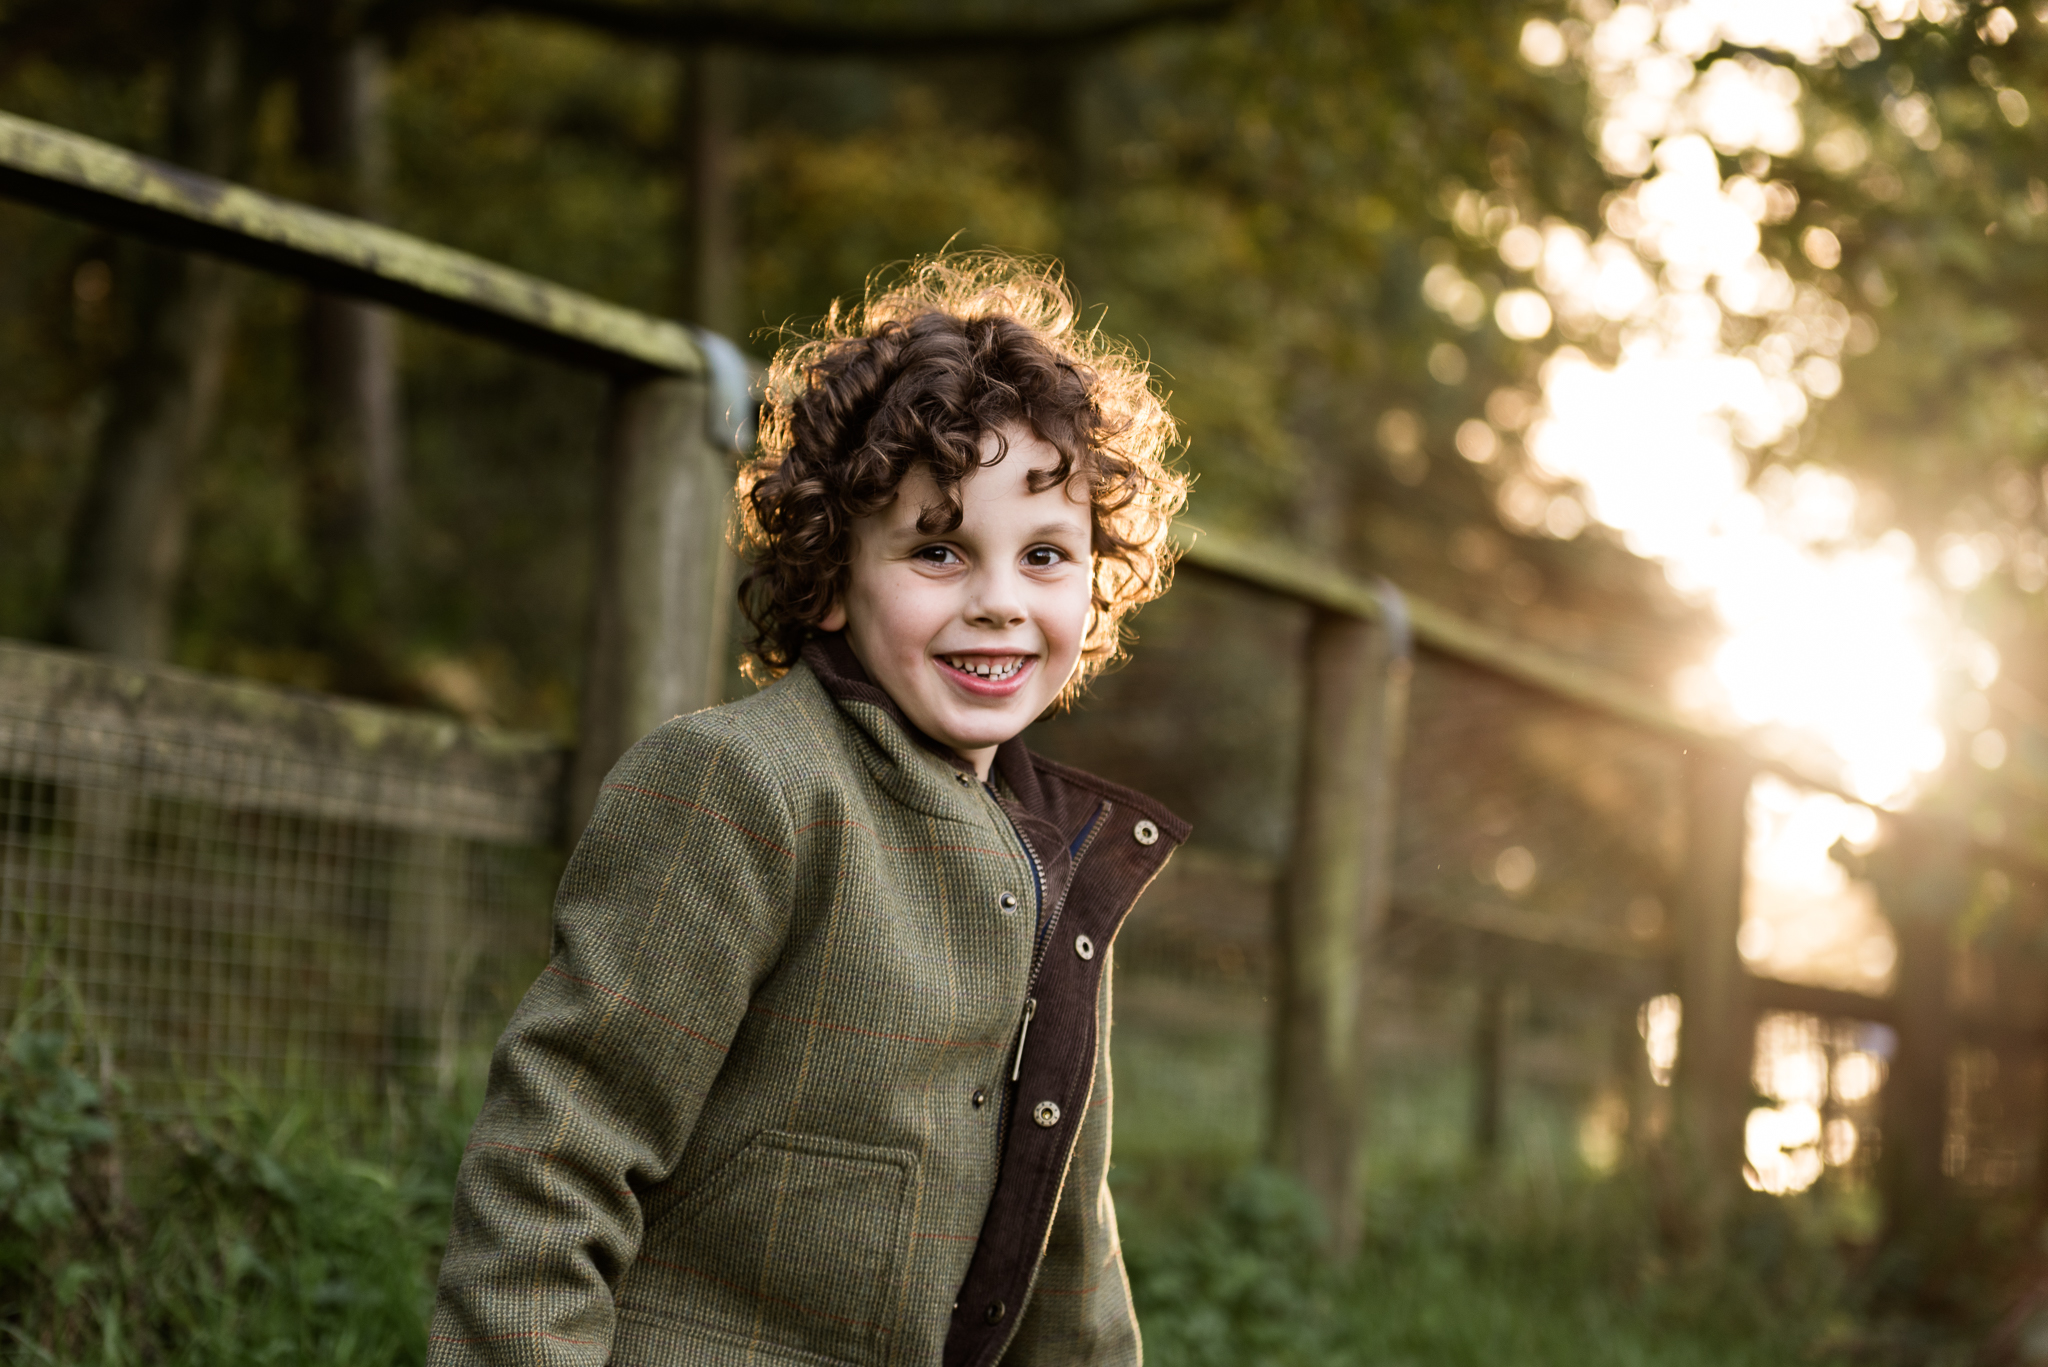 Autumn Documentary Lifestyle Family Photography at Clent Hills, Worcestershire Country Park countryside outdoors nature - Jenny Harper-25.jpg